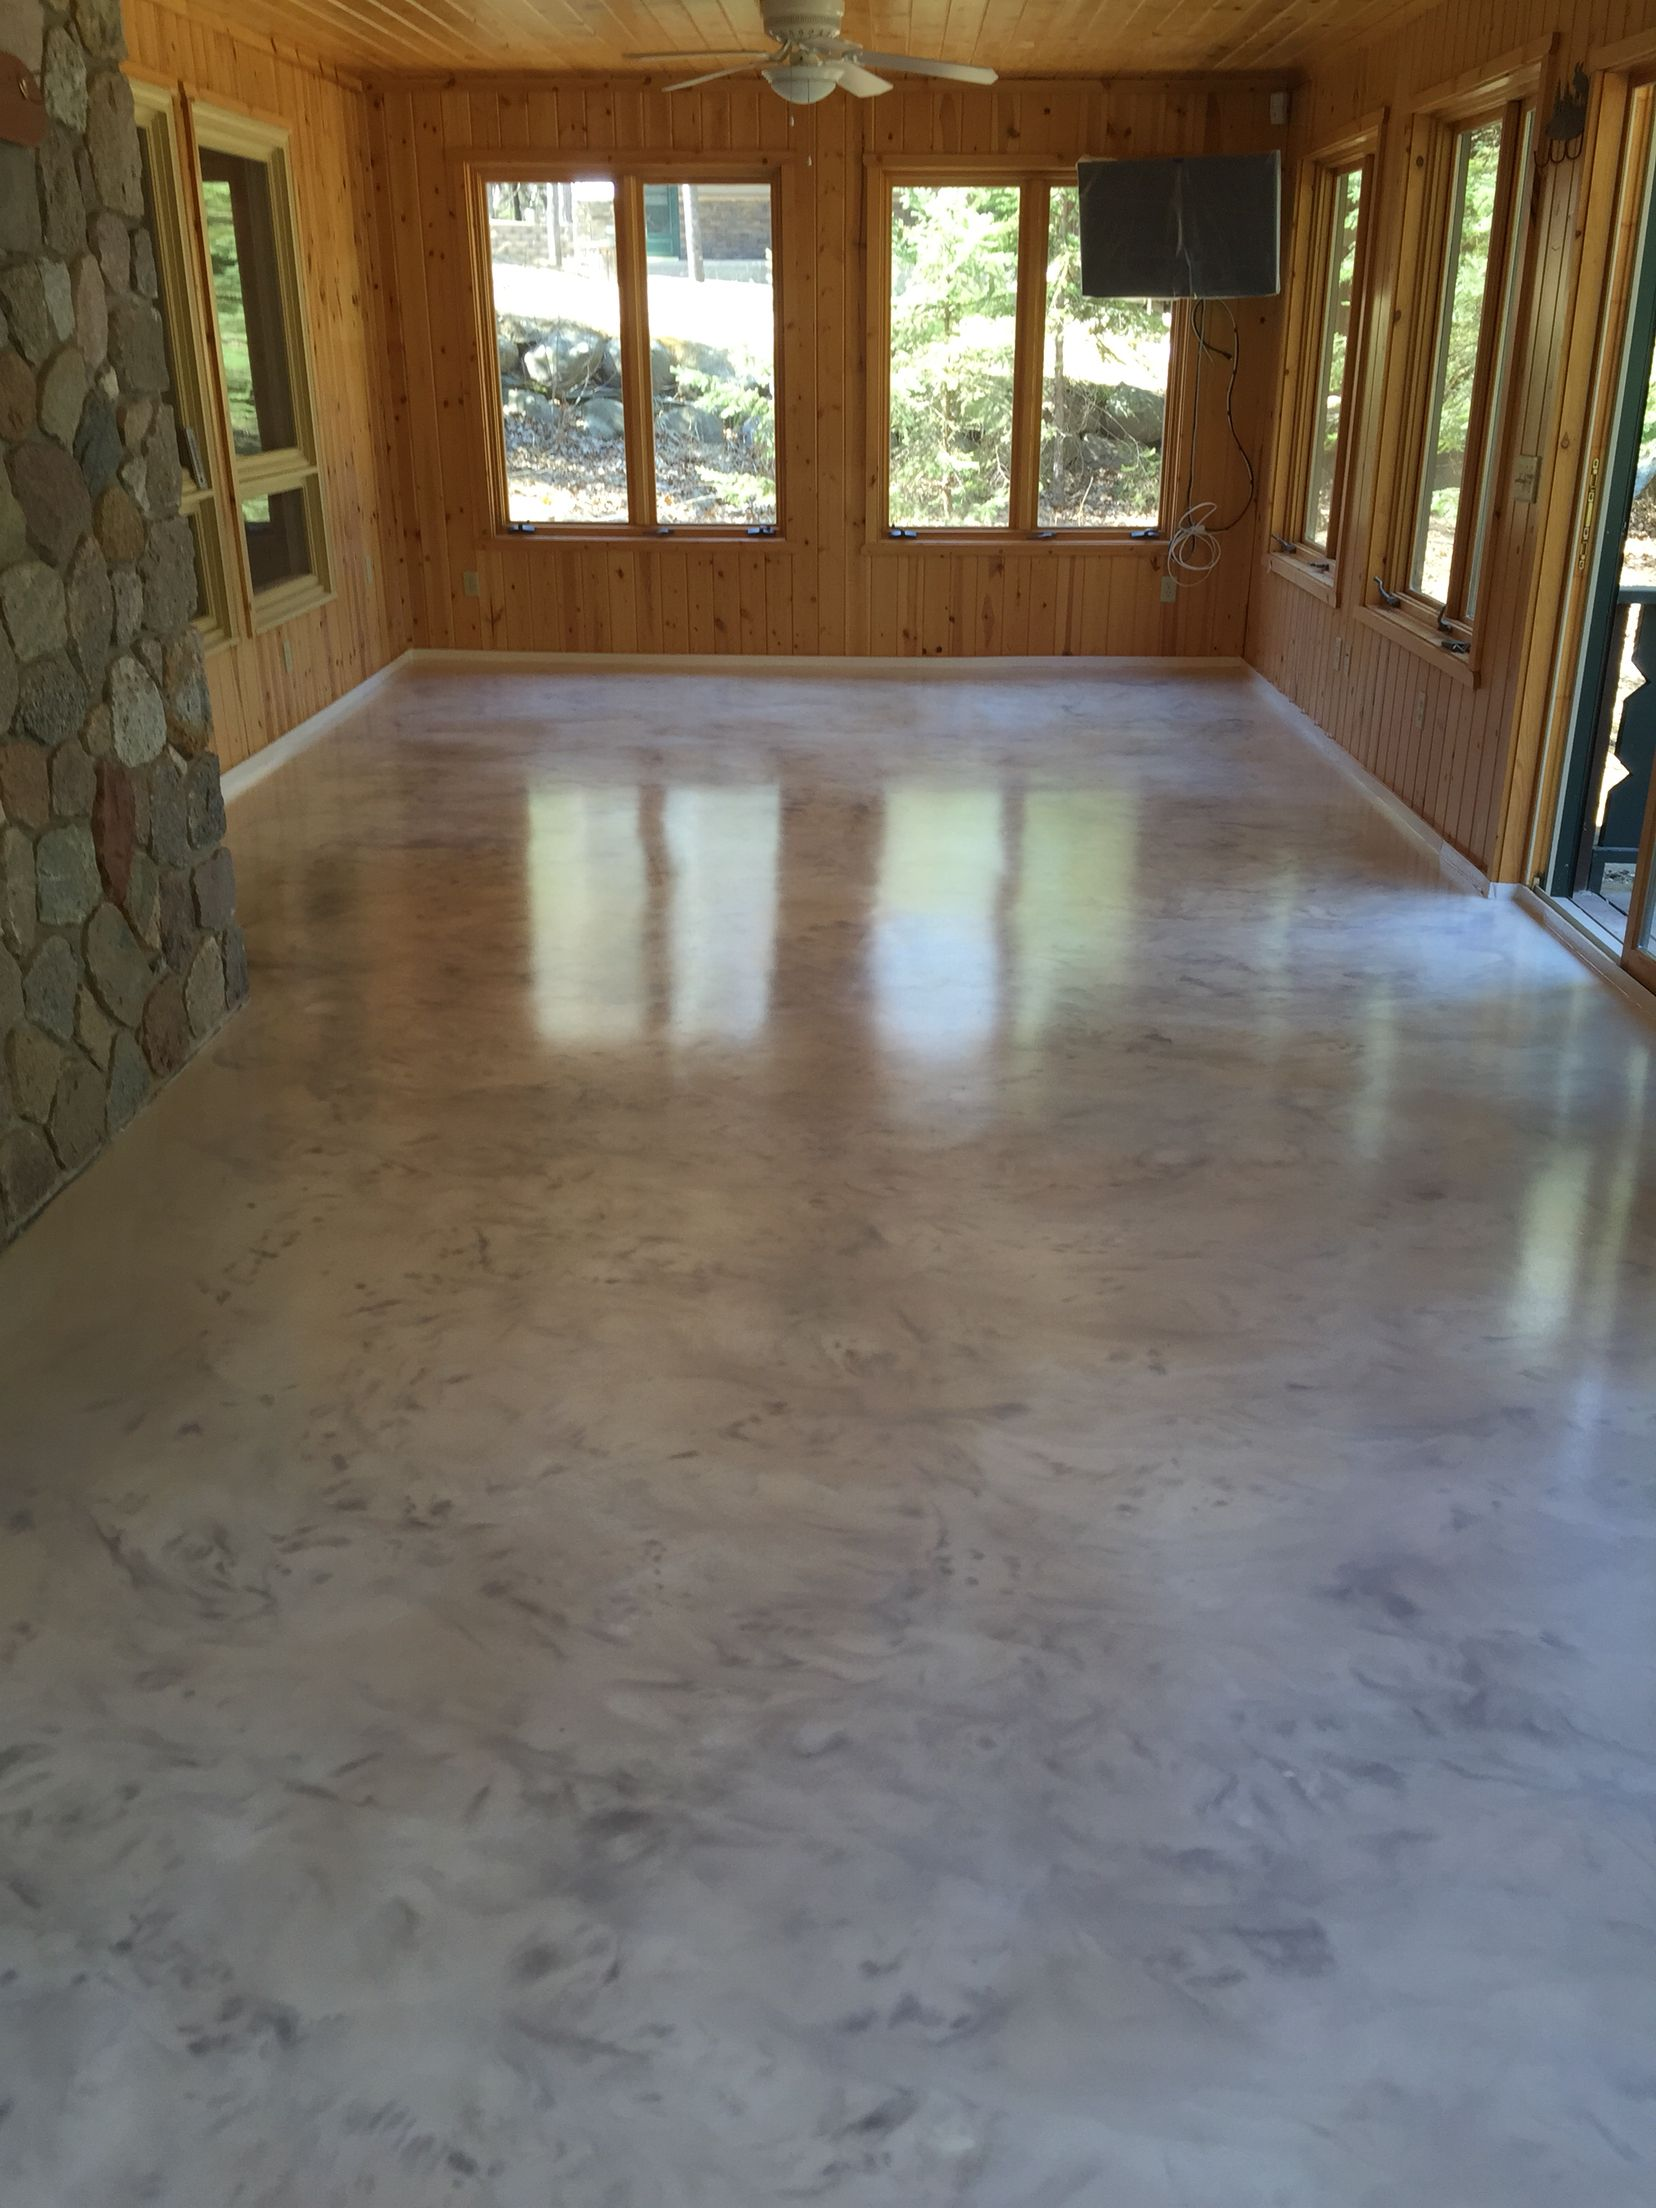 Metallic Epoxy Floor Coating With Satin Non Slip Finish By Sierra Concrete Arts Metallic Epoxy Floor Epoxy Floor Basement Decorative Concrete Floors